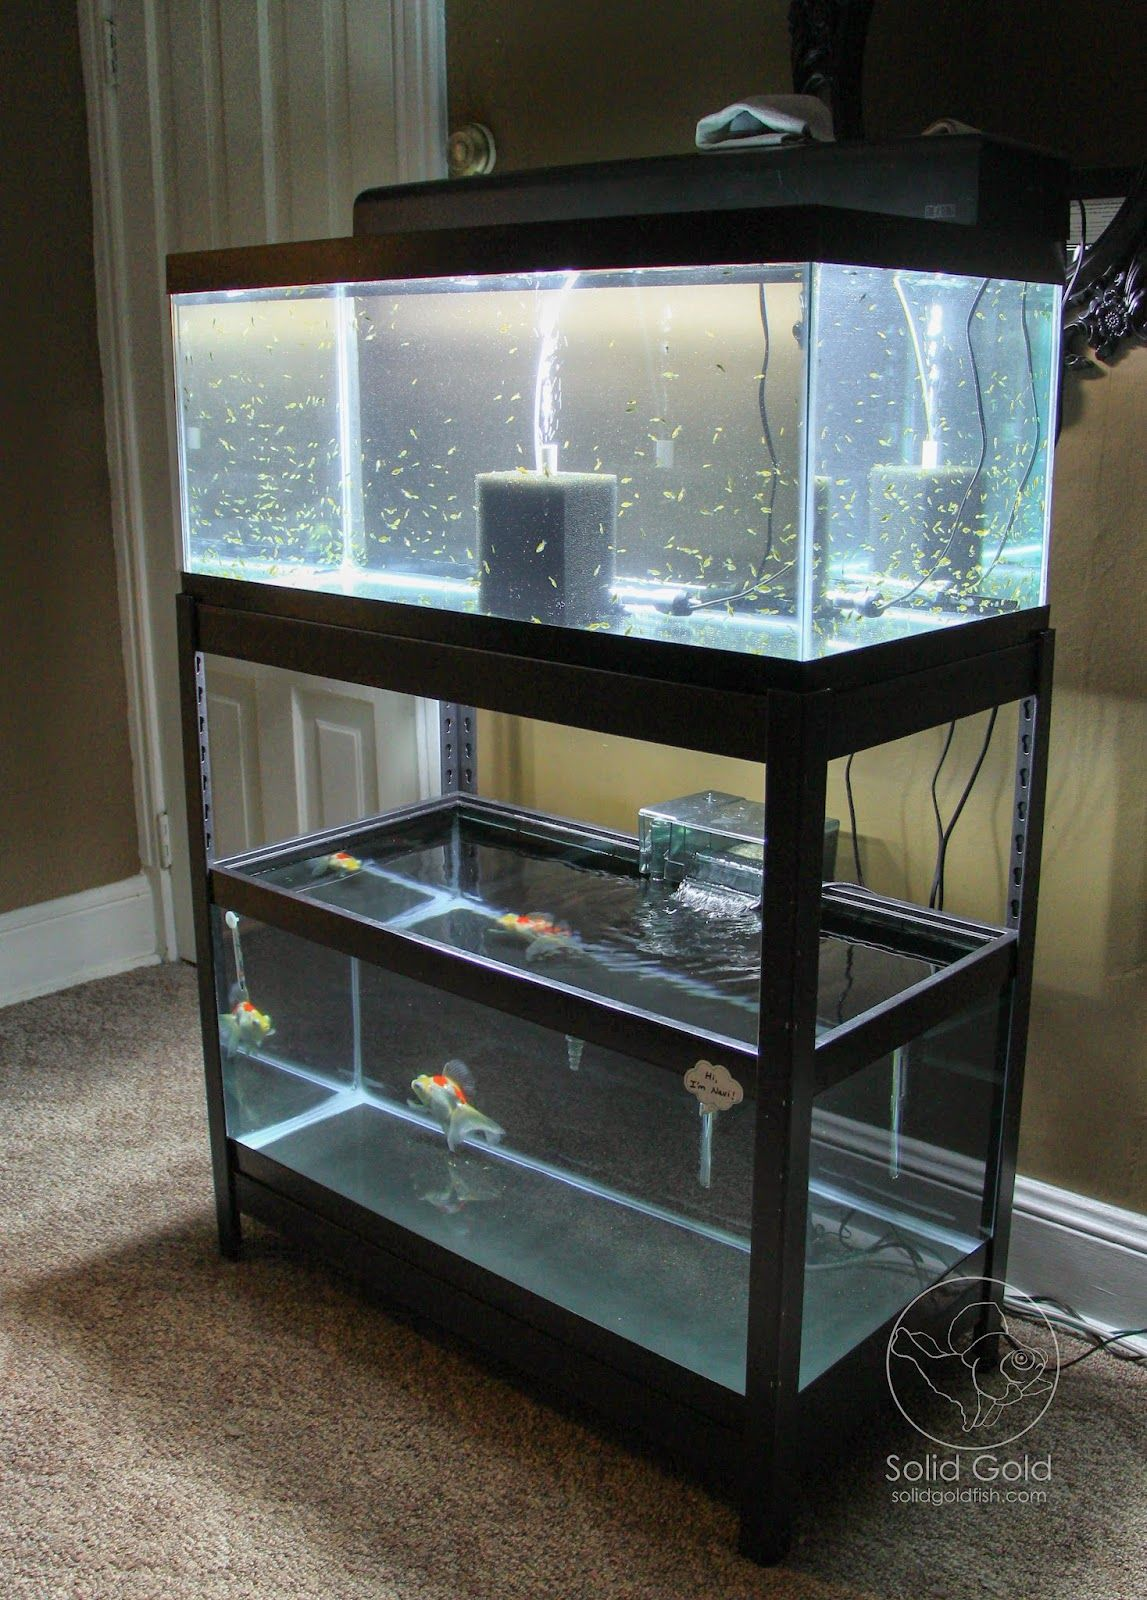 Shelving Unit From Lowe S That Fits Two 40 Gallon Breeder